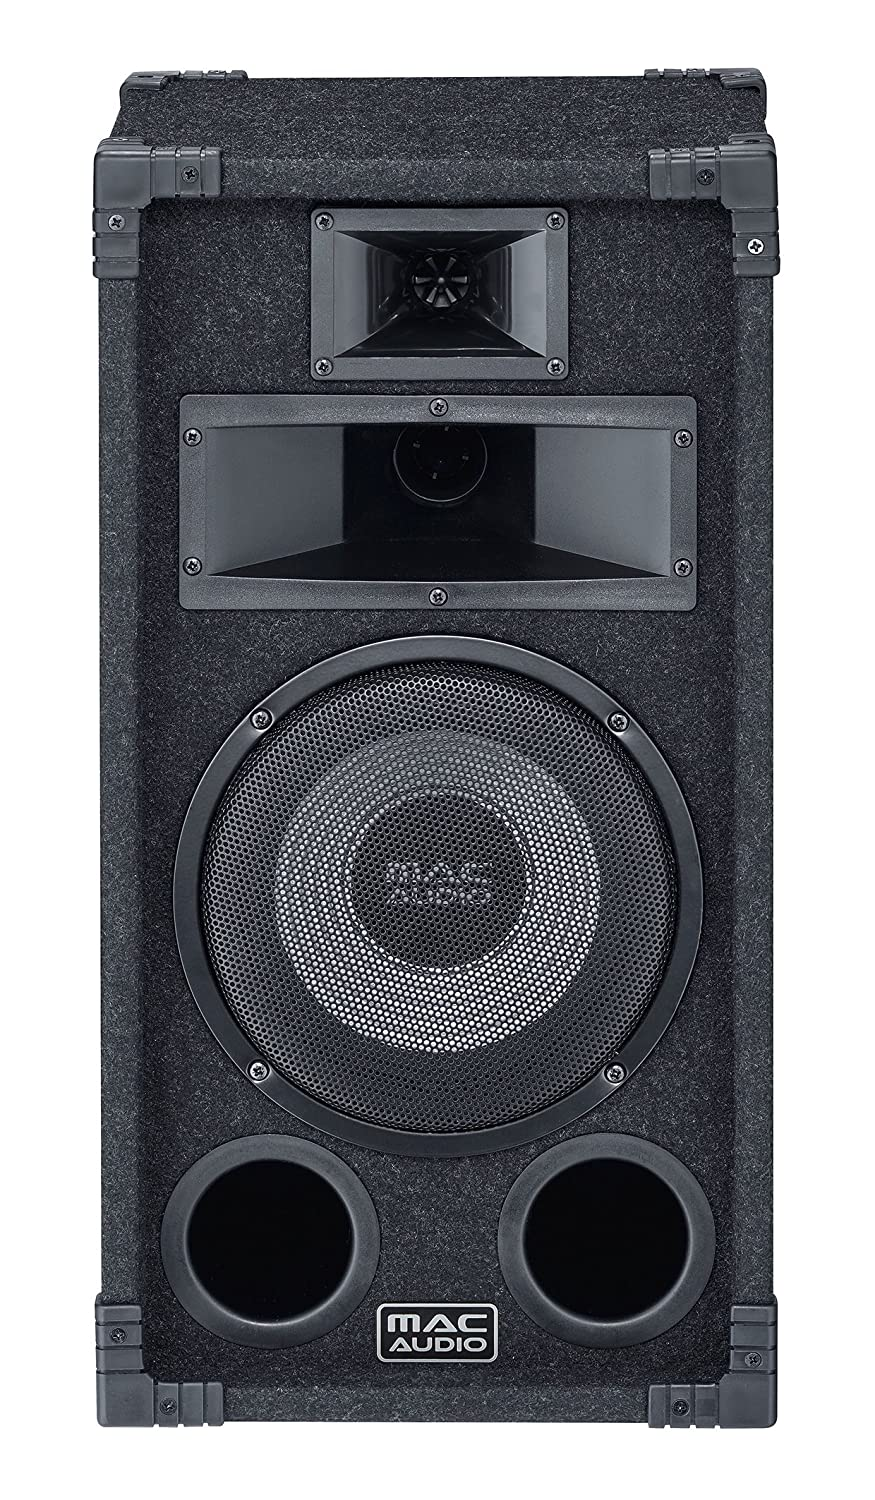 Mac Audio Soundforce 1200 130W Negro Altavoz - Altavoces (De 3 vías, 1.0 Canales, 130 W, 35-25000 Hz, 8 Ω, Negro)